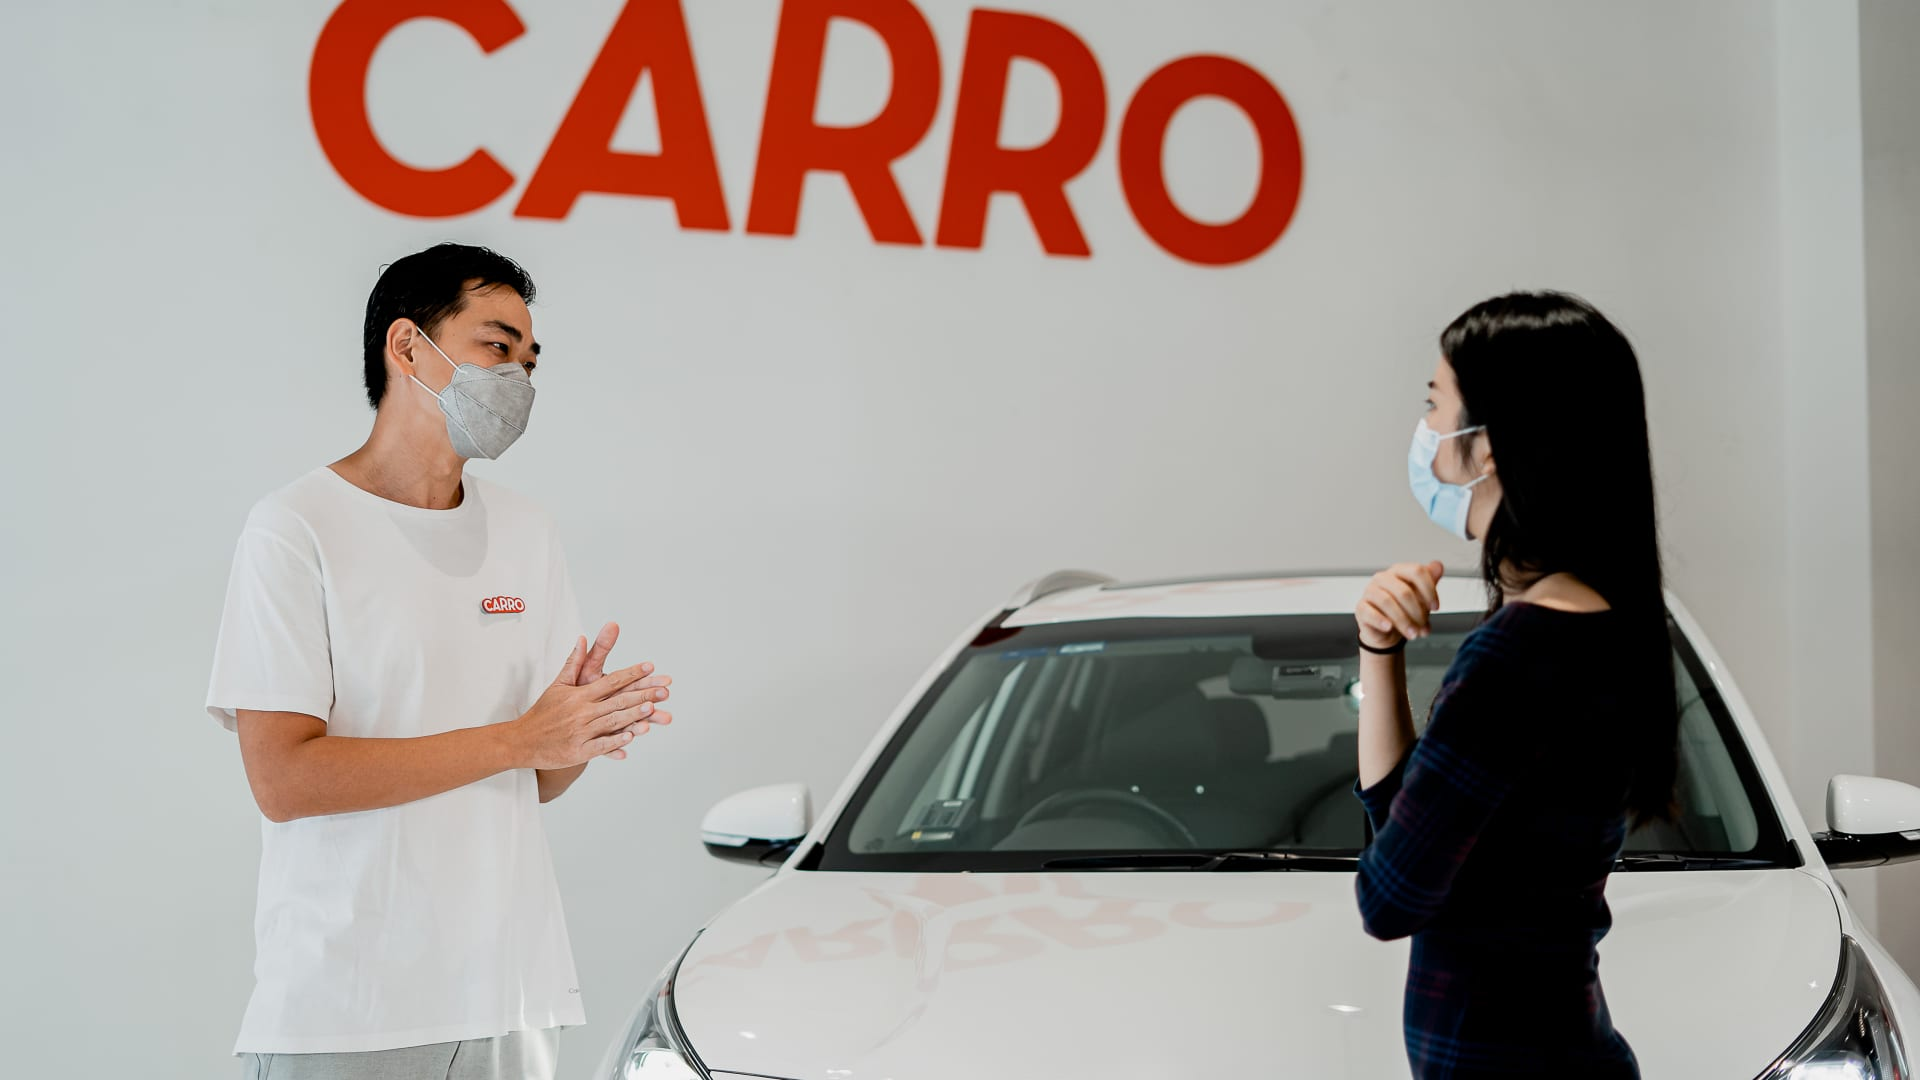 Carro says it is assisting with the transition to greener transport methods, by allowing buyers to trial new cars like electric vehicles.